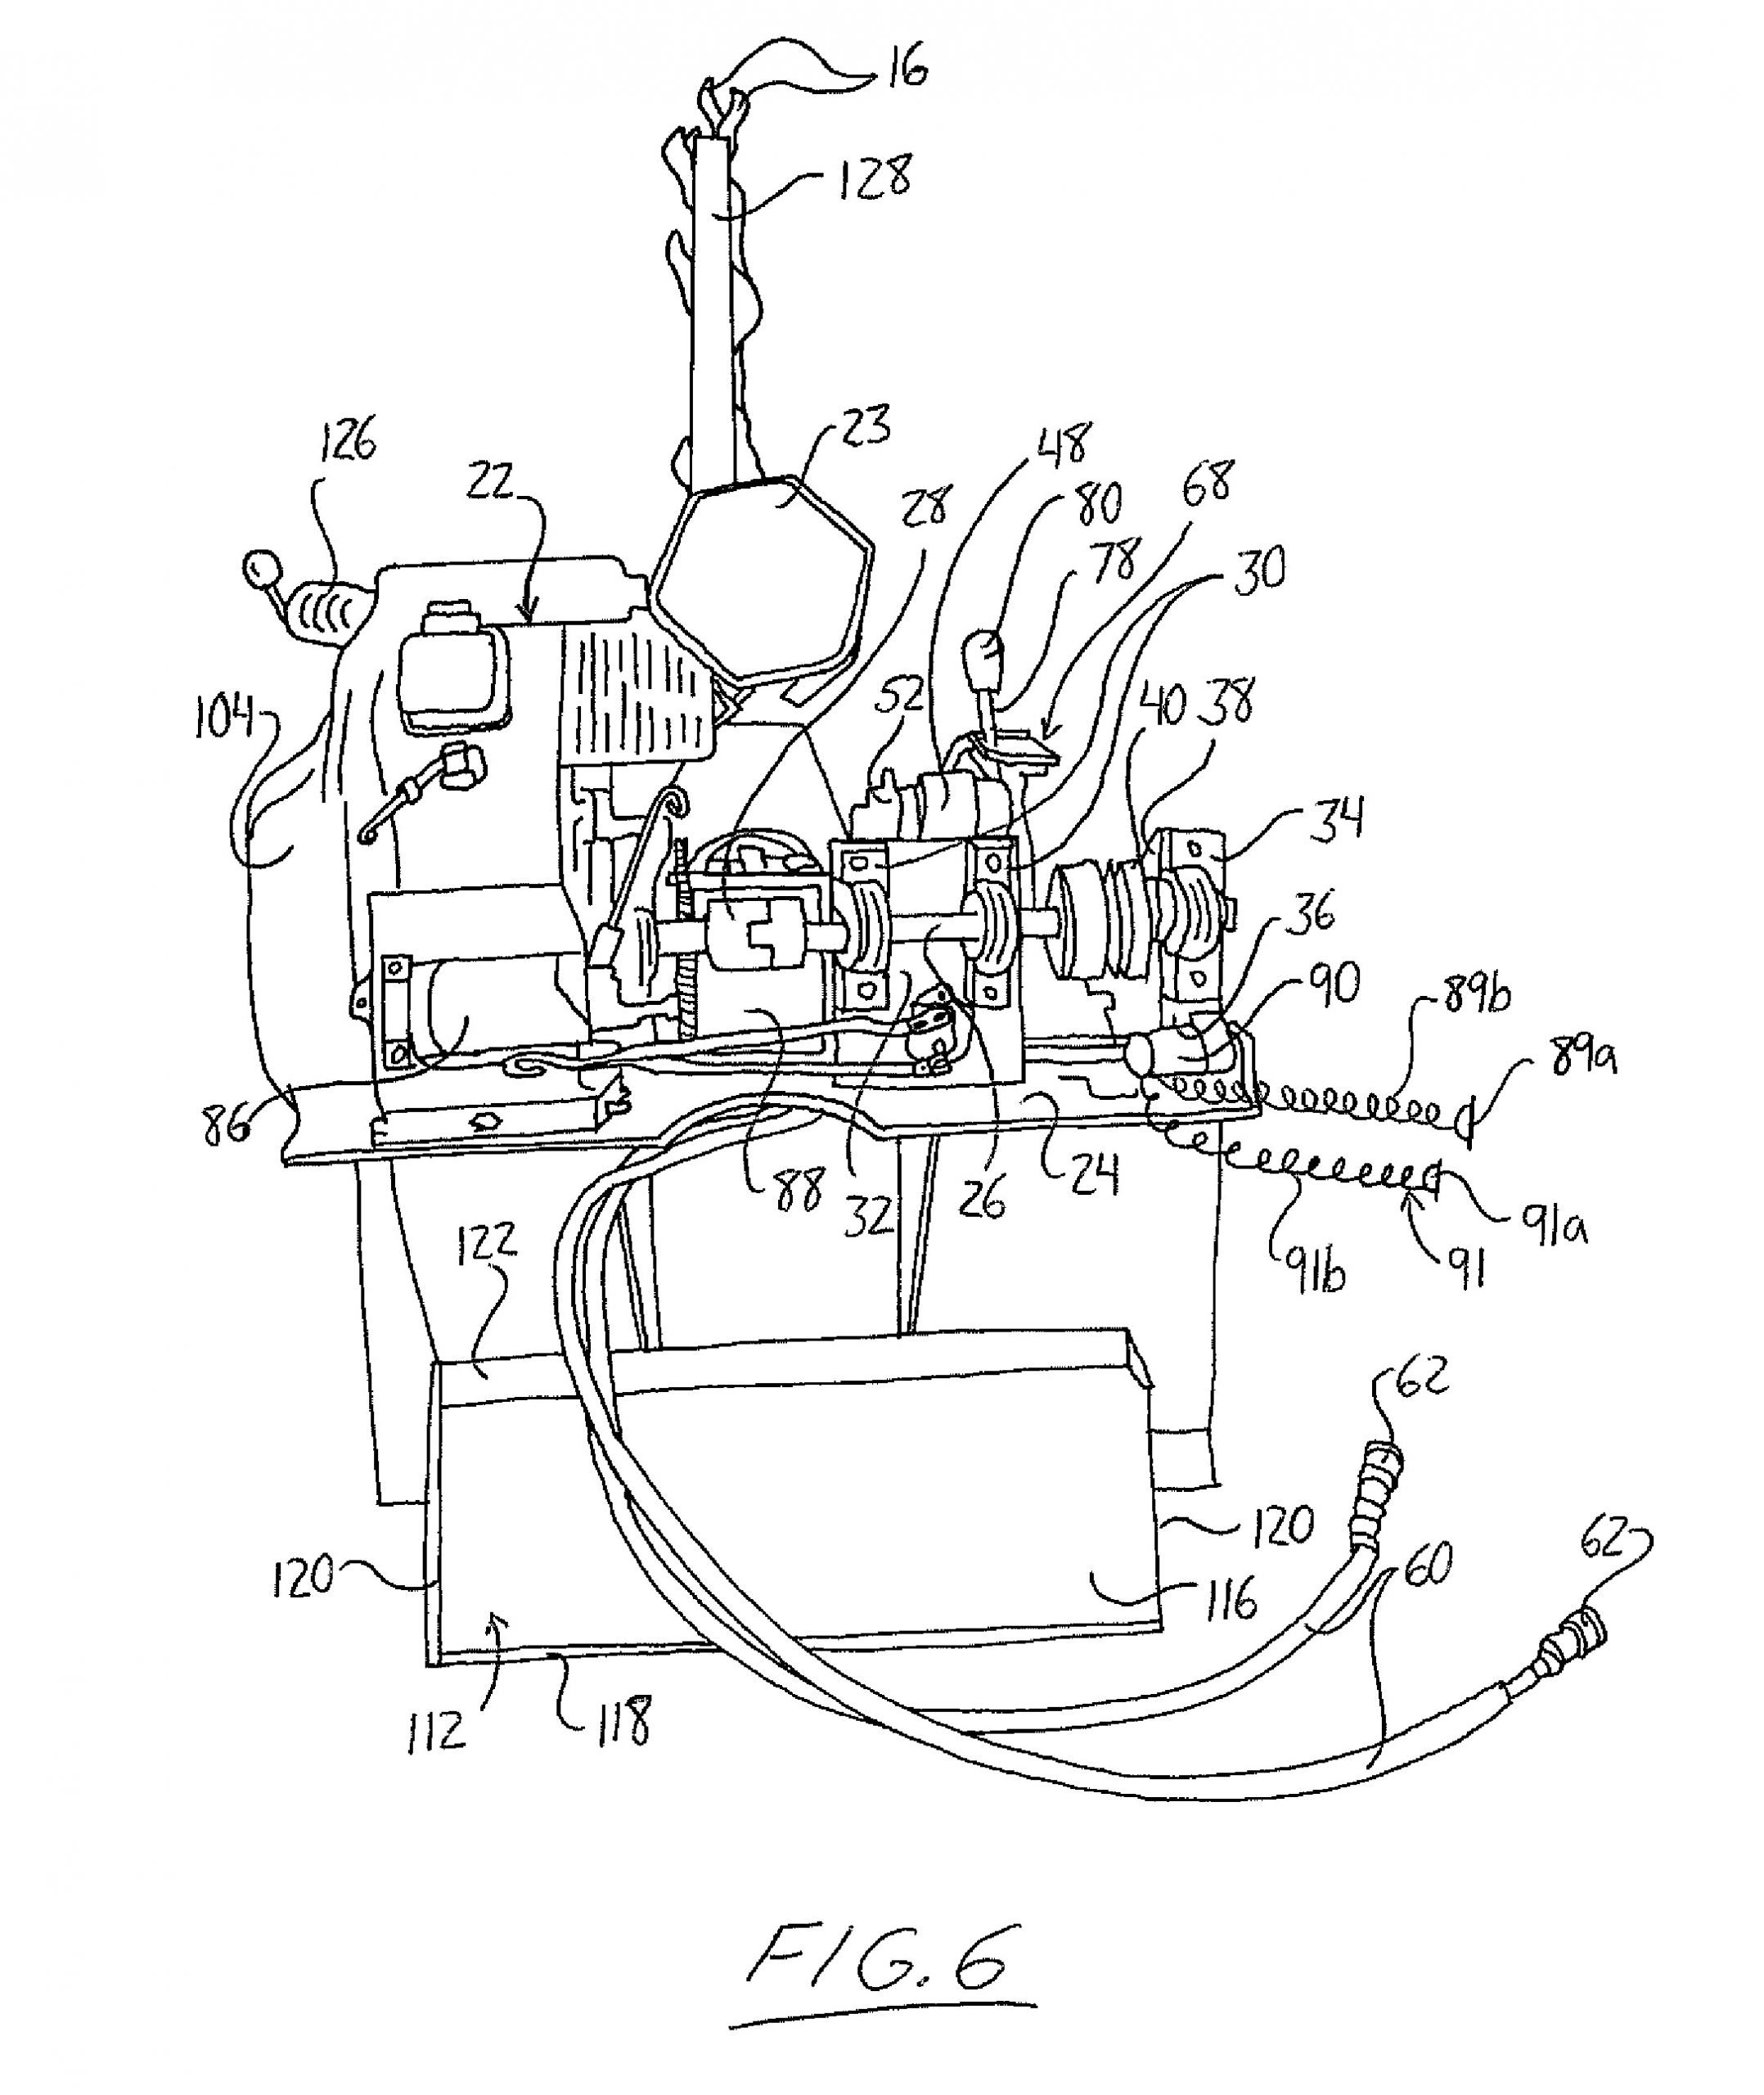 Sk750 Ditch Witch Wiring Diagram Ditch Witch 1020 Parts Diagram Wiring Diagram Of Sk750 Ditch Witch Wiring Diagram